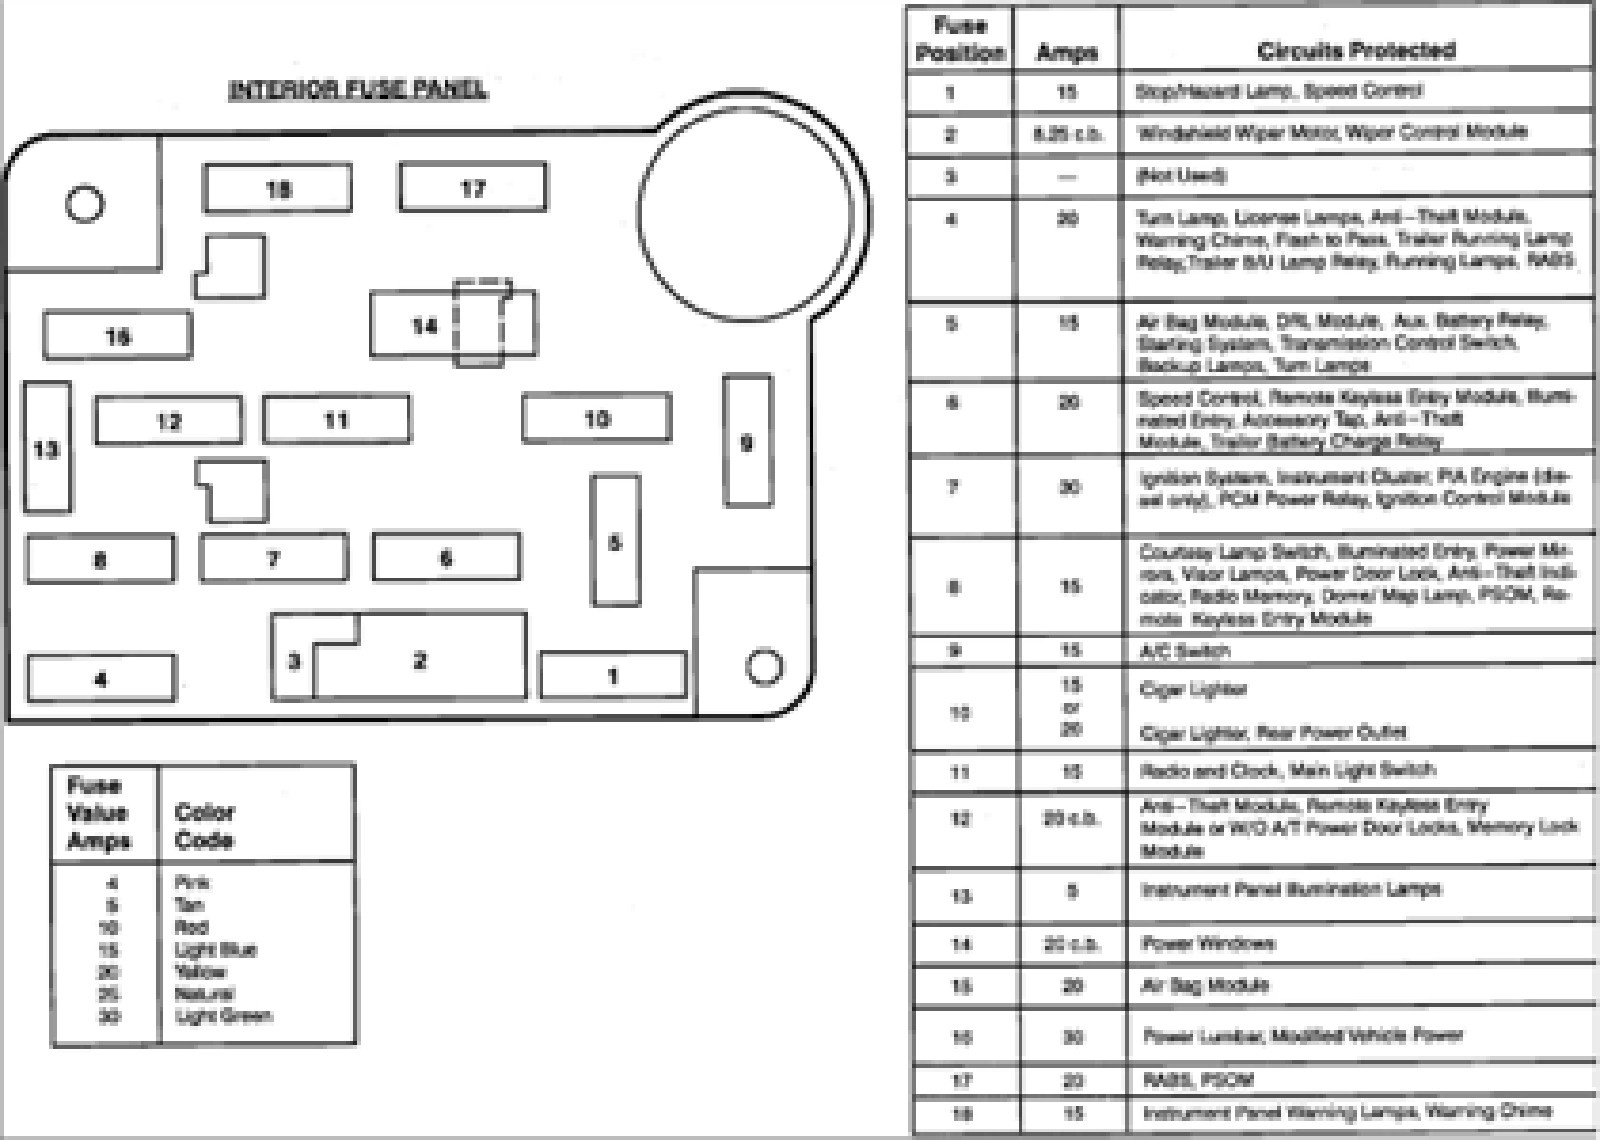 ford e 150 questions fuse diagram for a 1993 ford econoline van rh cargurus com 2010 F150 Fuse Box Diagram 1996 ford f 150 under hood fuse box diagram